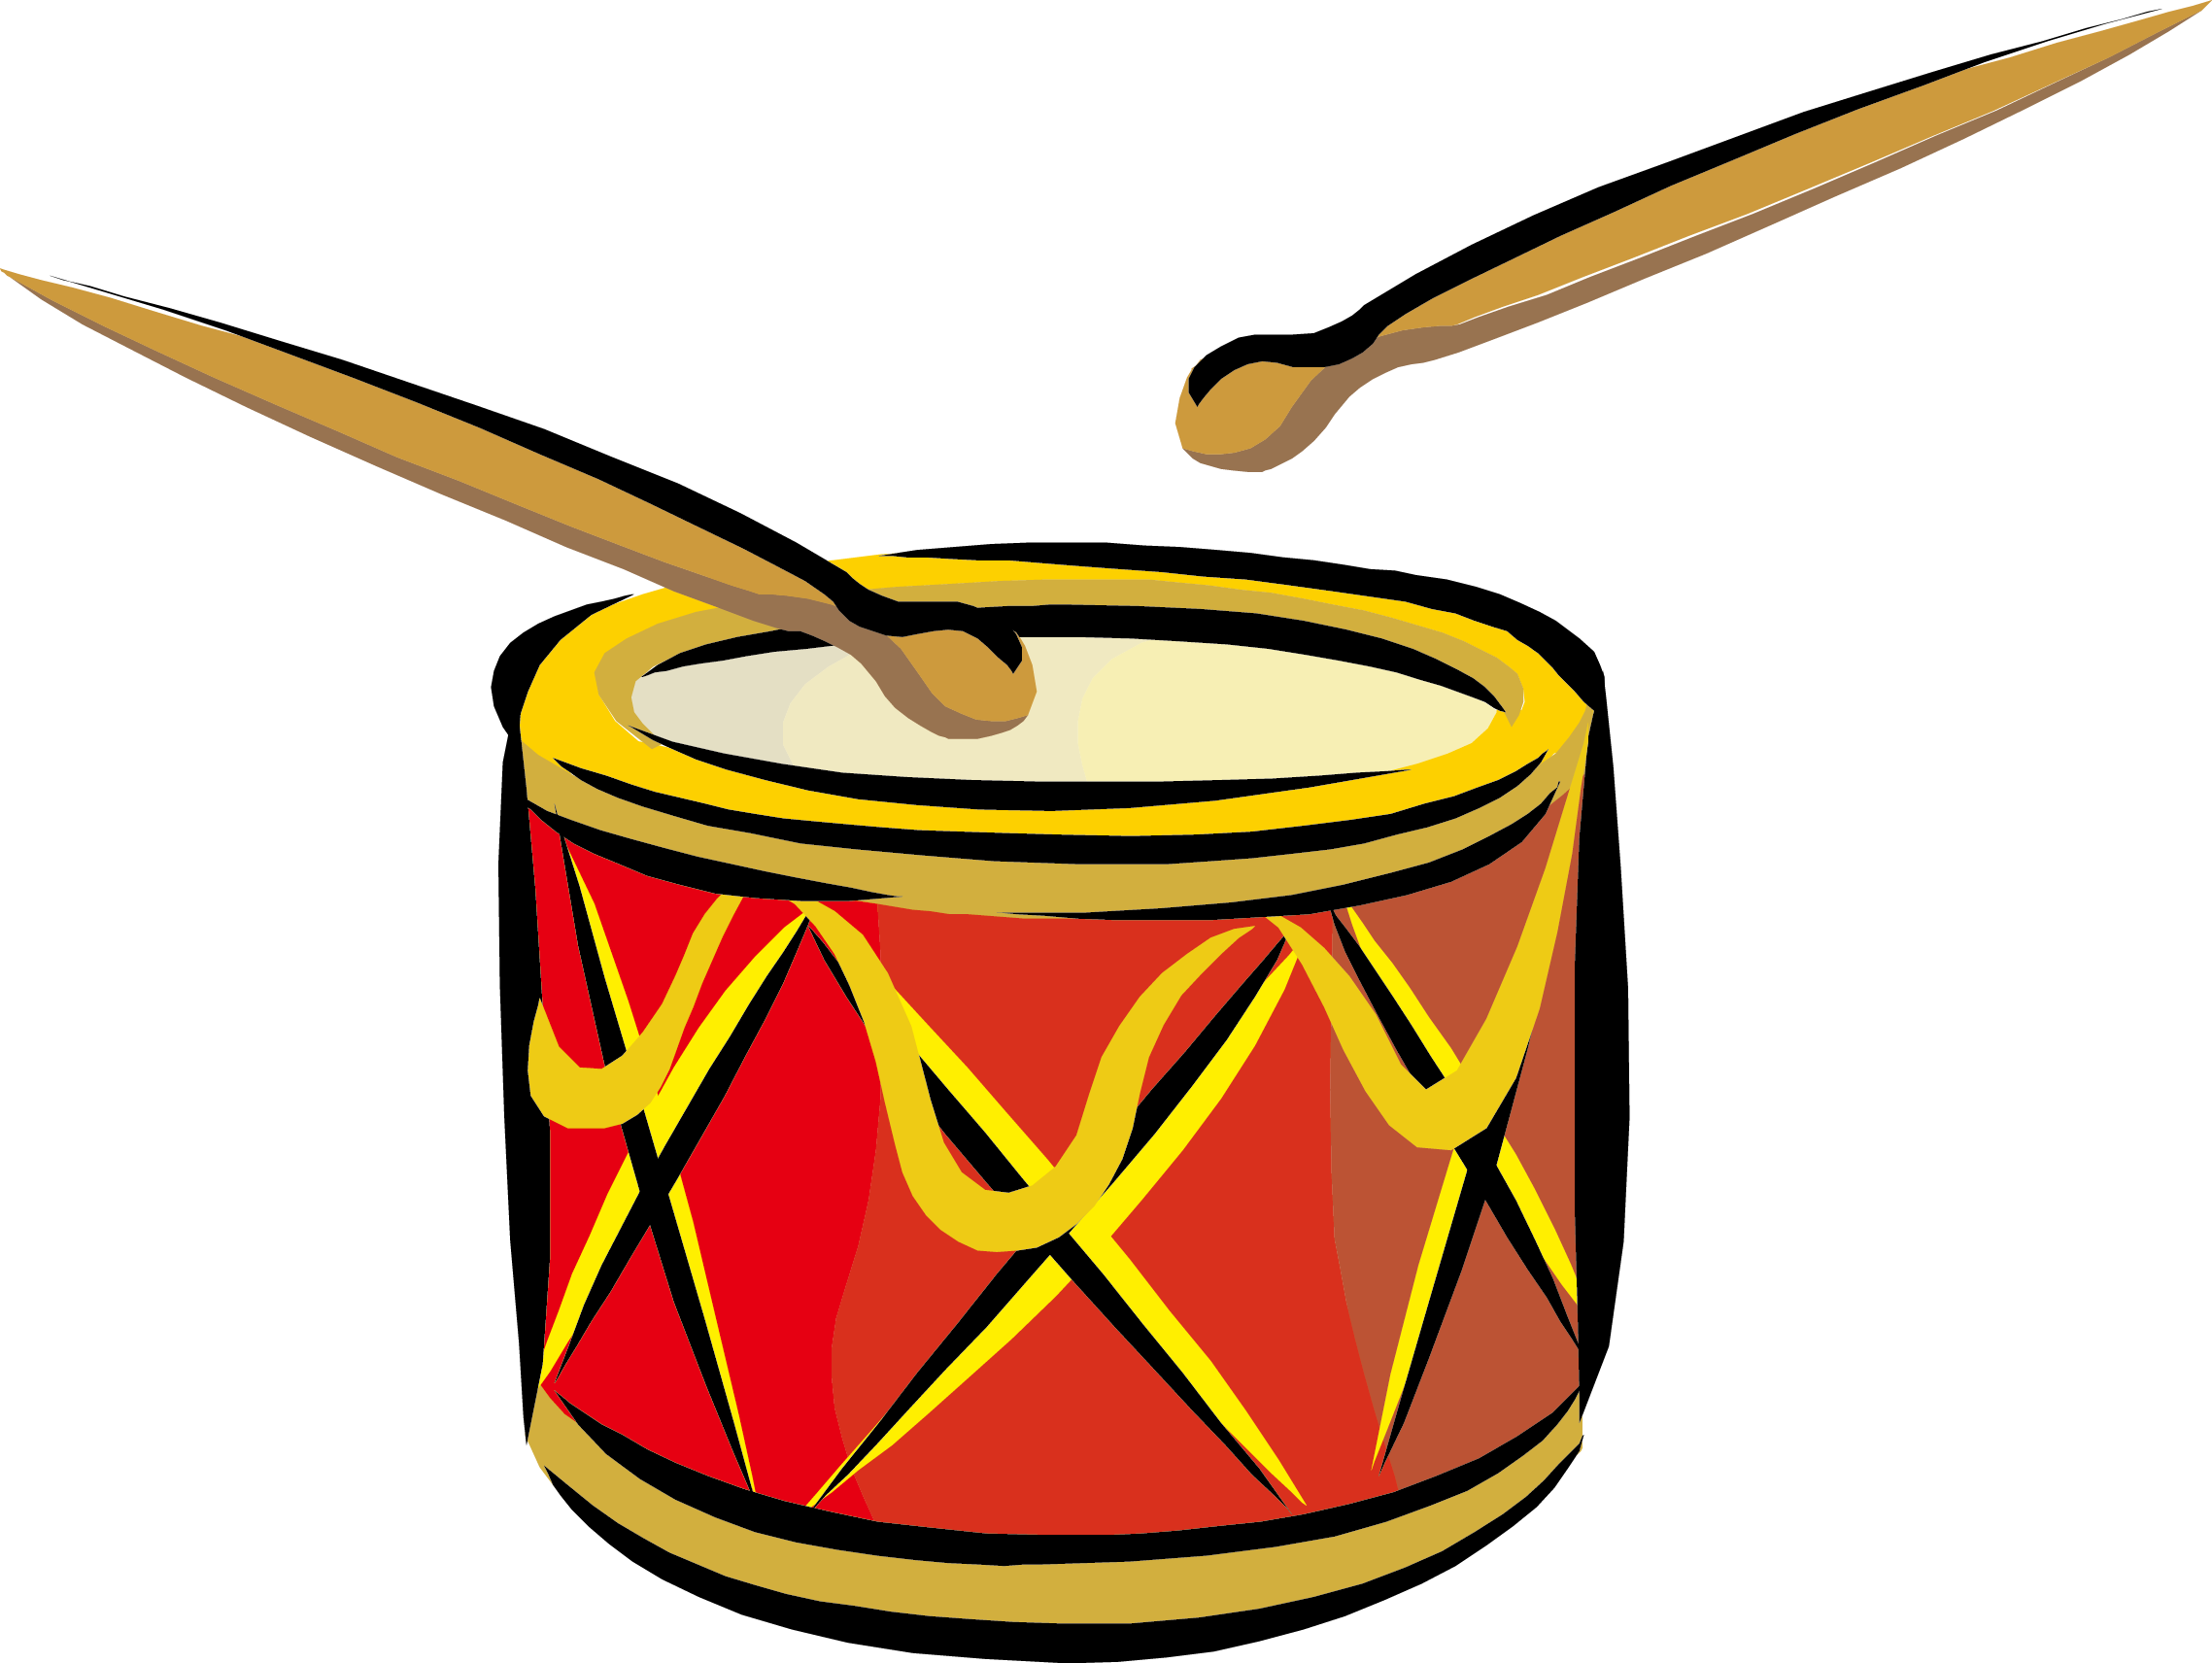 Drums clipart drum roll. Stick snare clip art